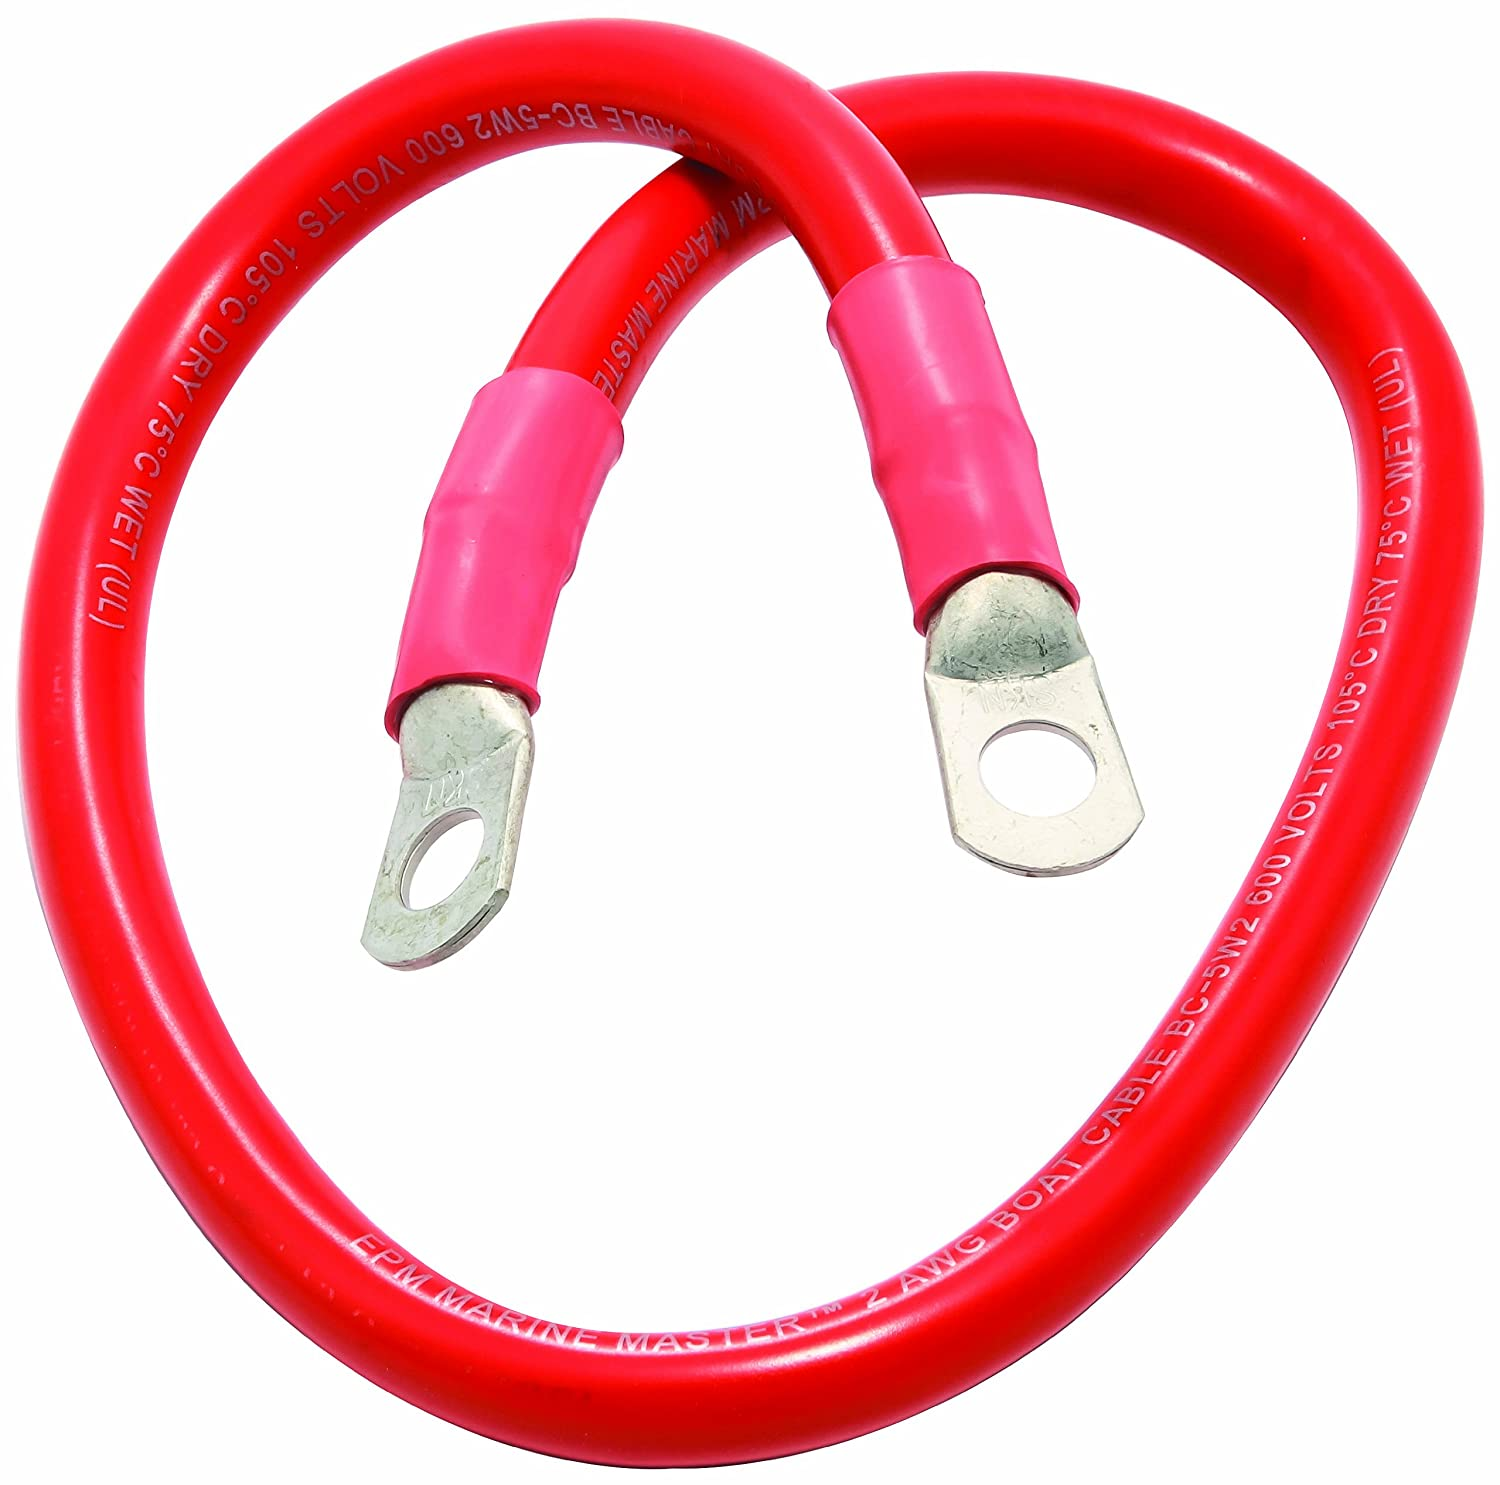 Camco 47451 Red 3//8 Stud 32 Long 4-Gauge Marine Battery Cable and Lug Assembly Tinned